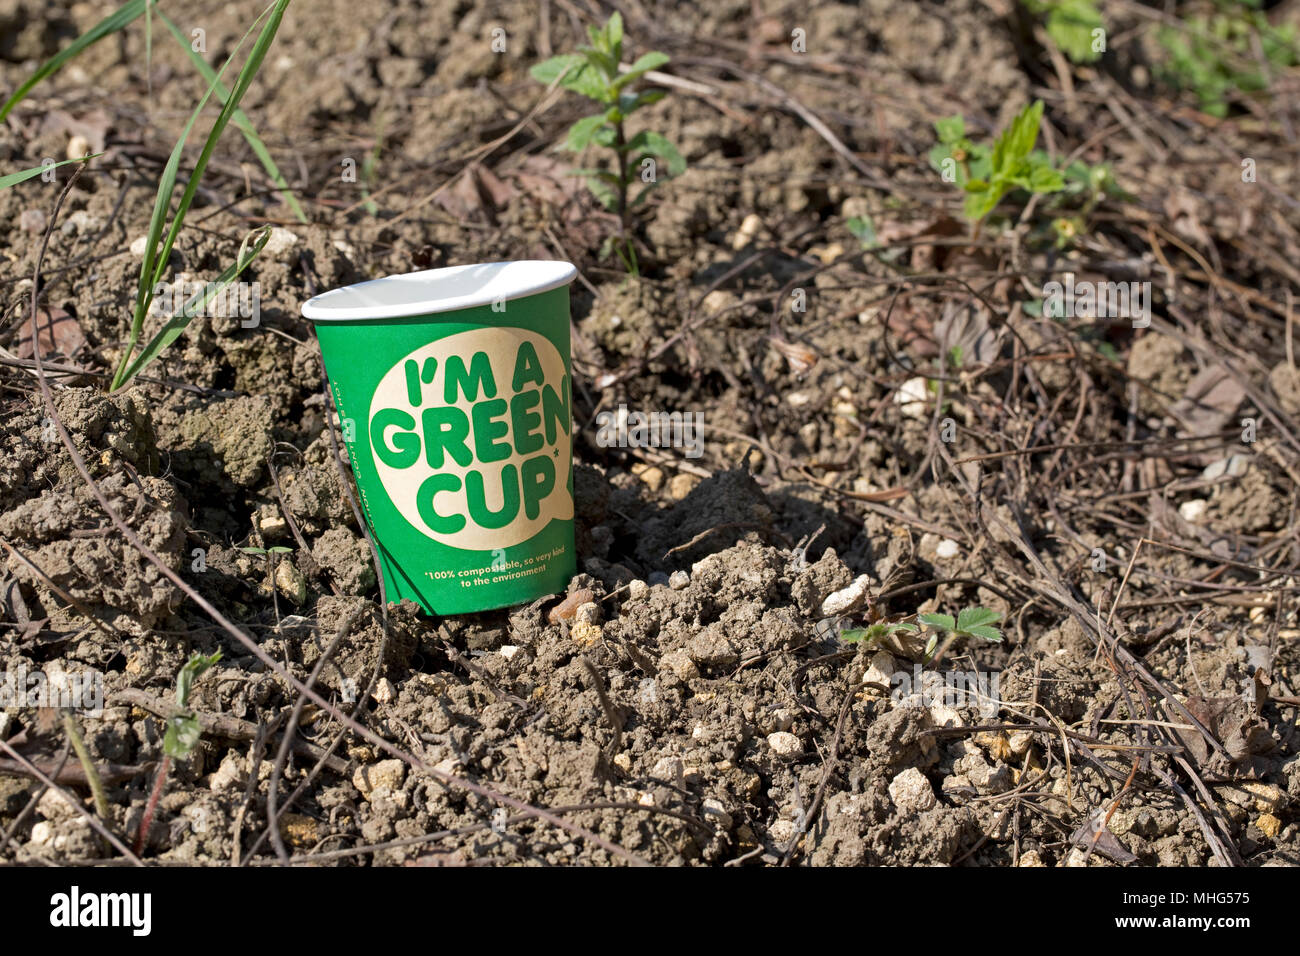 100% compostable Green recyclable coffee cups made with no plastic UK - Stock Image